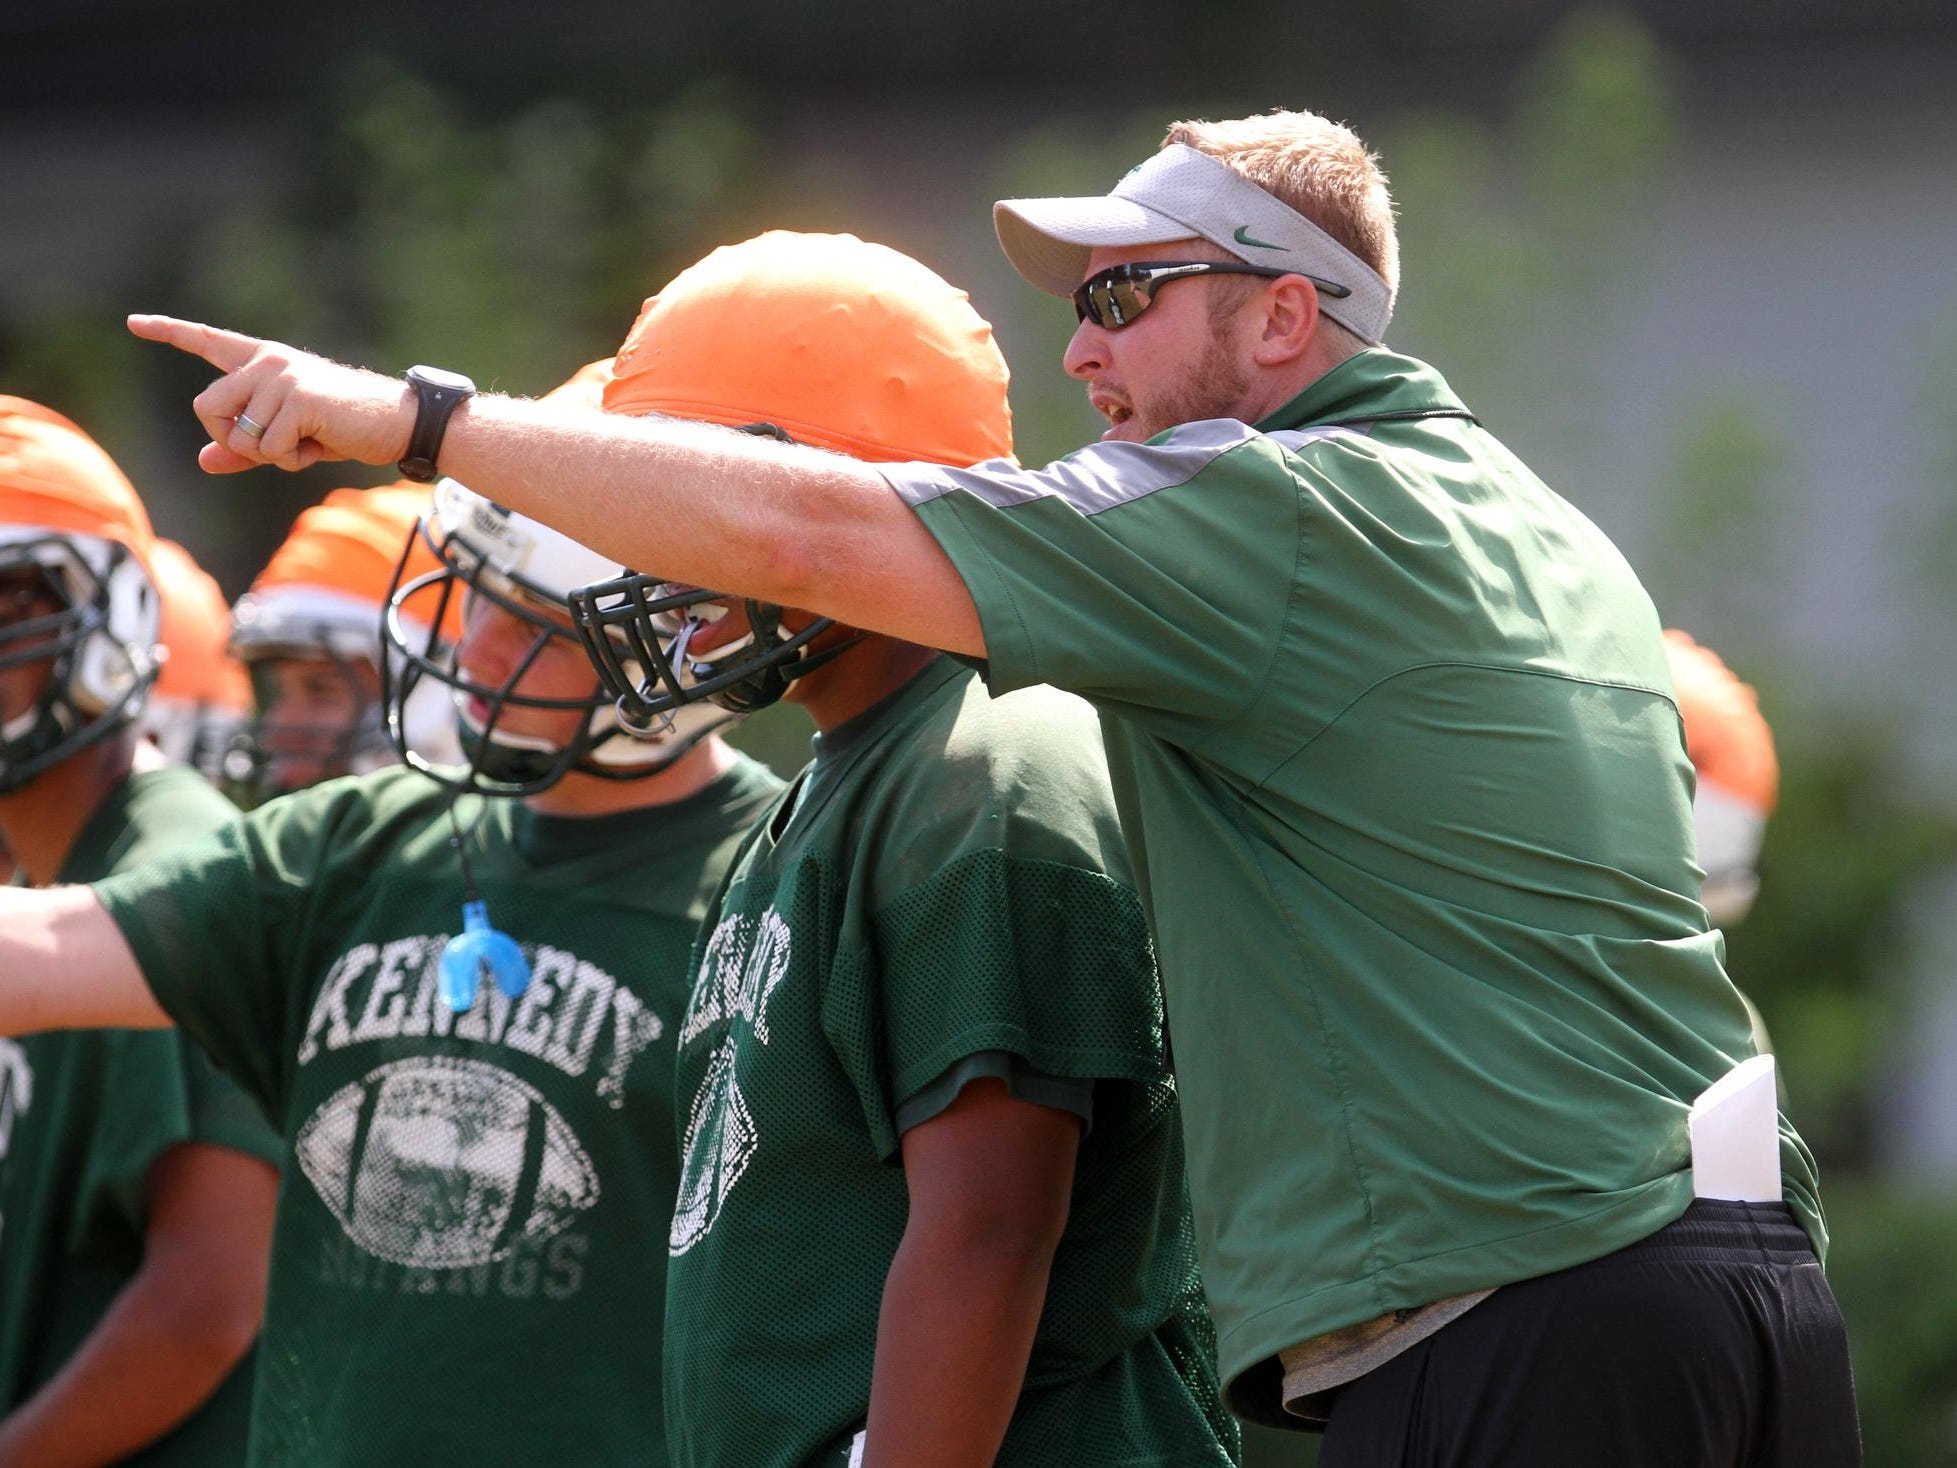 J.F. Kennedy head coach Andrew Maurizio works with his team during preseason football practice, Monday, August 25, 2014, in Woodbridge, NJ. Photo by Jason Towlen